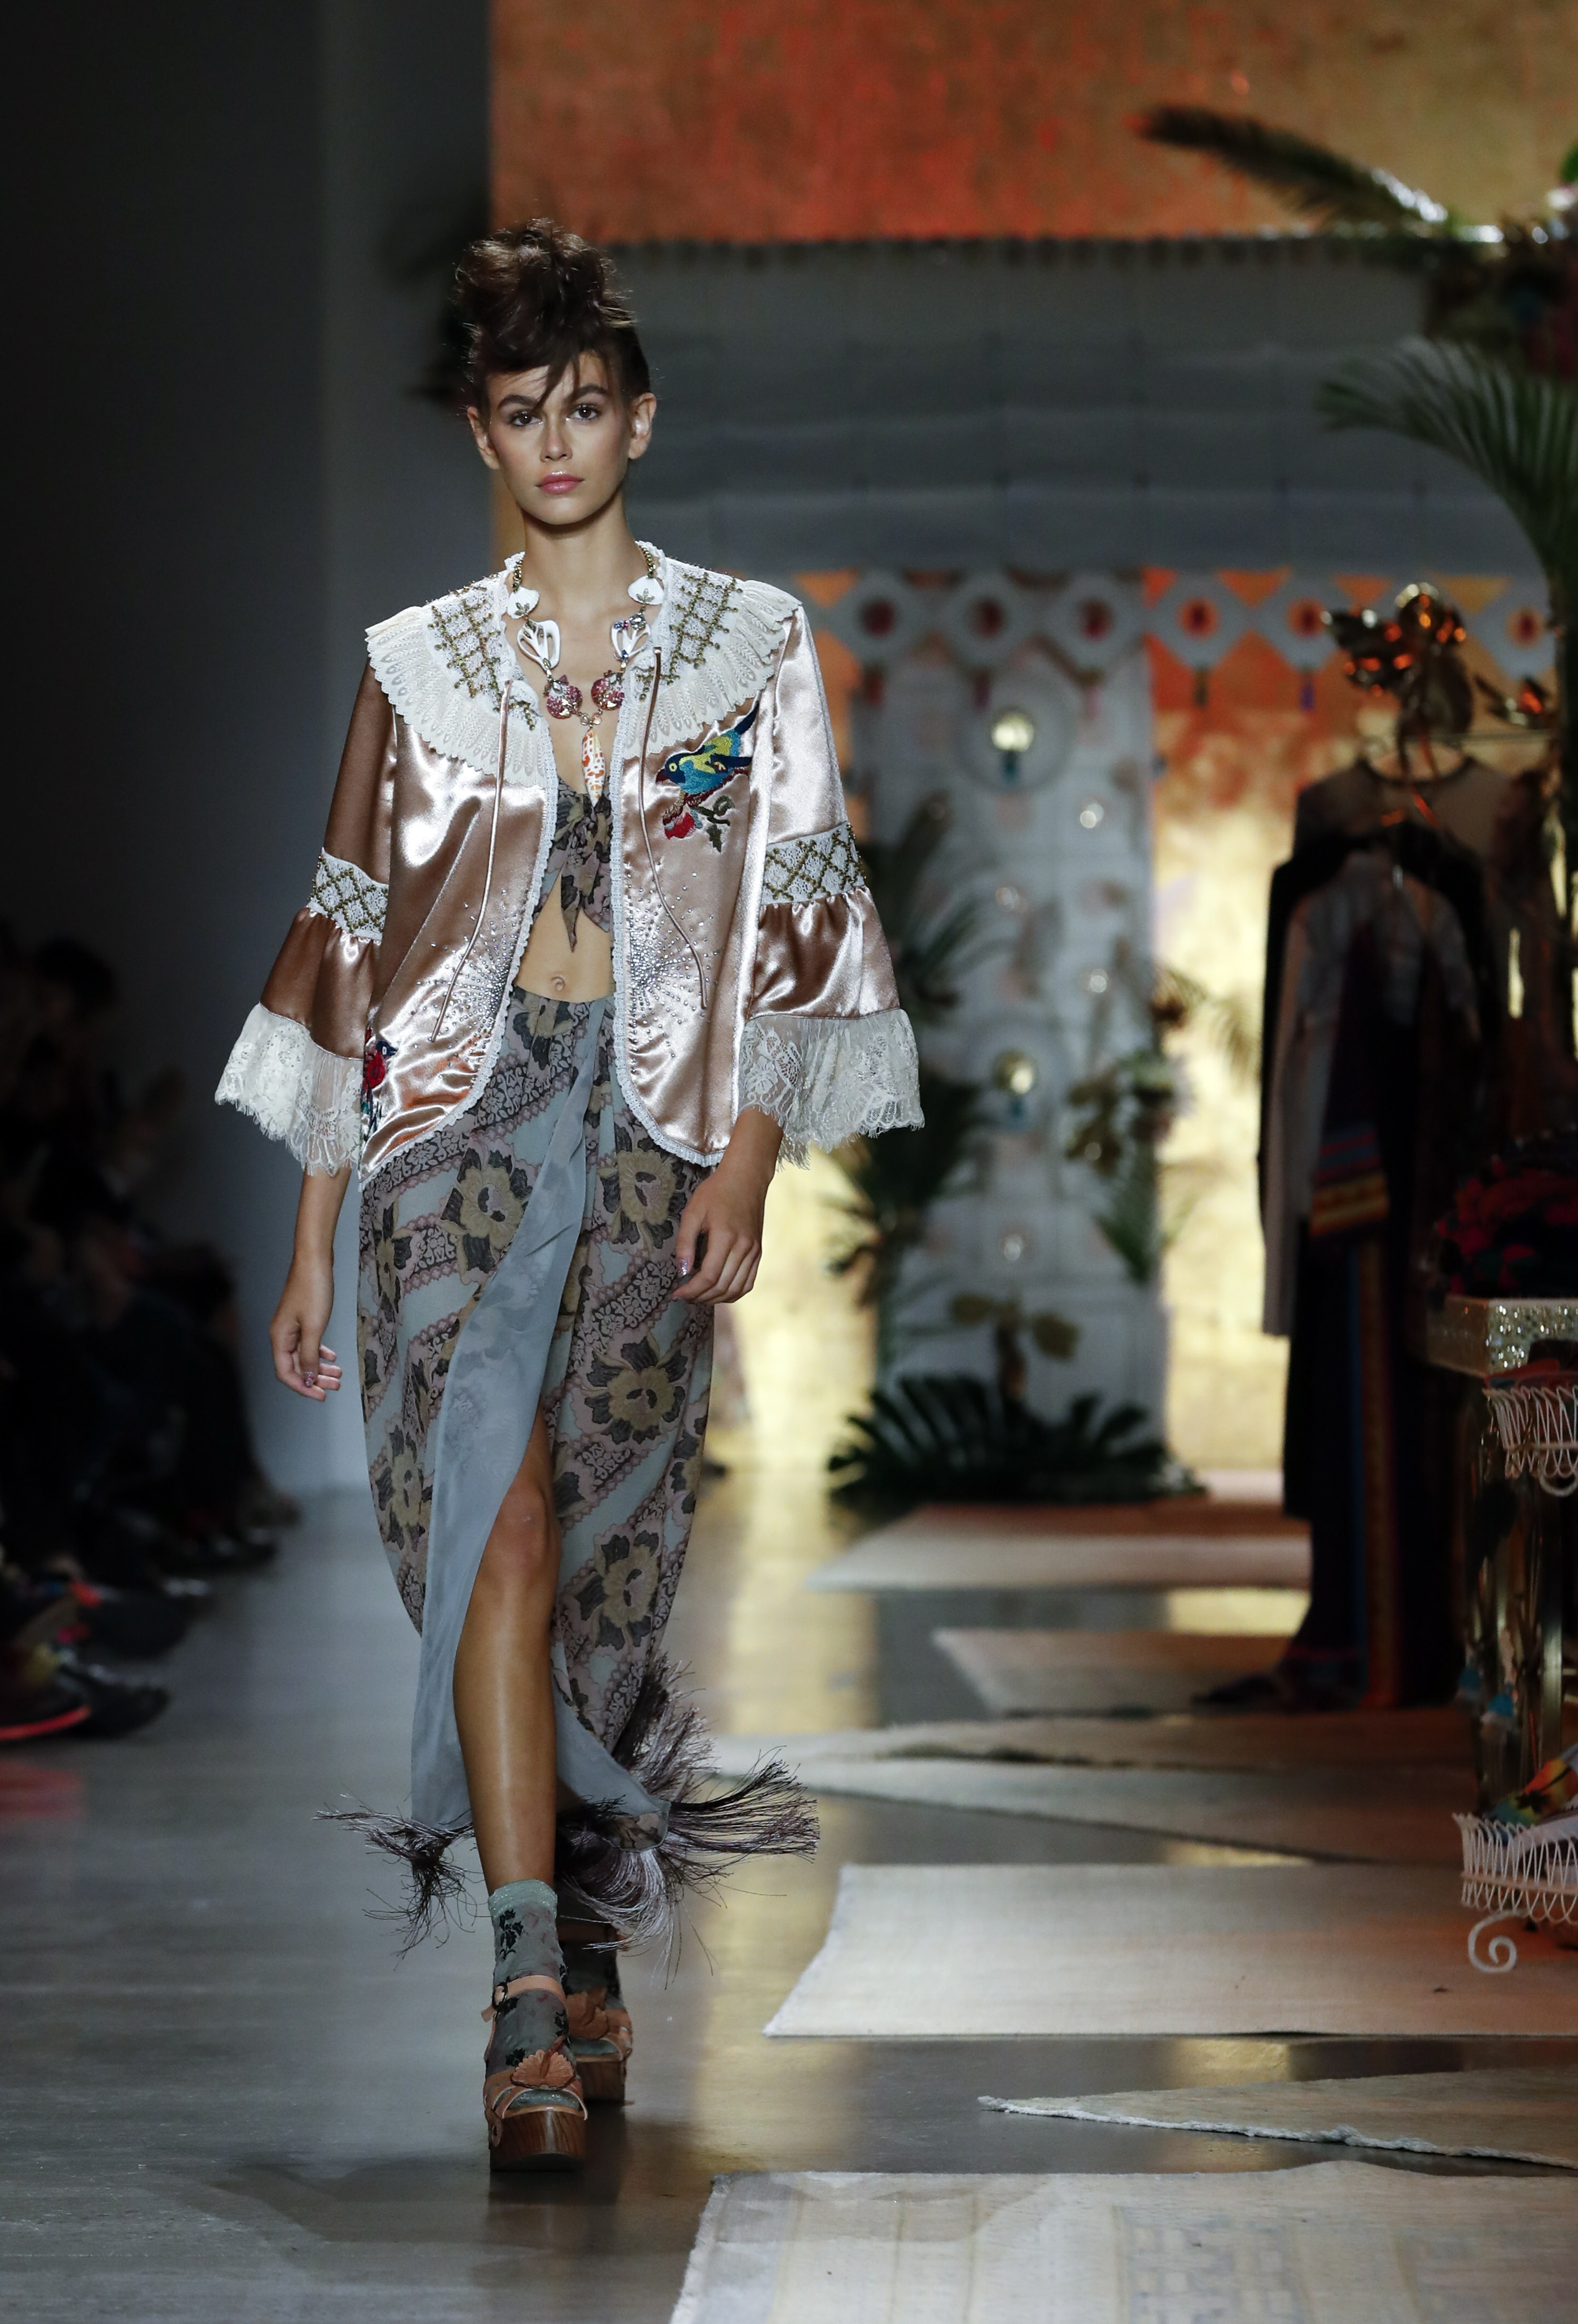 e9975d9d166 10 top  takeaways  from New York Fashion Week